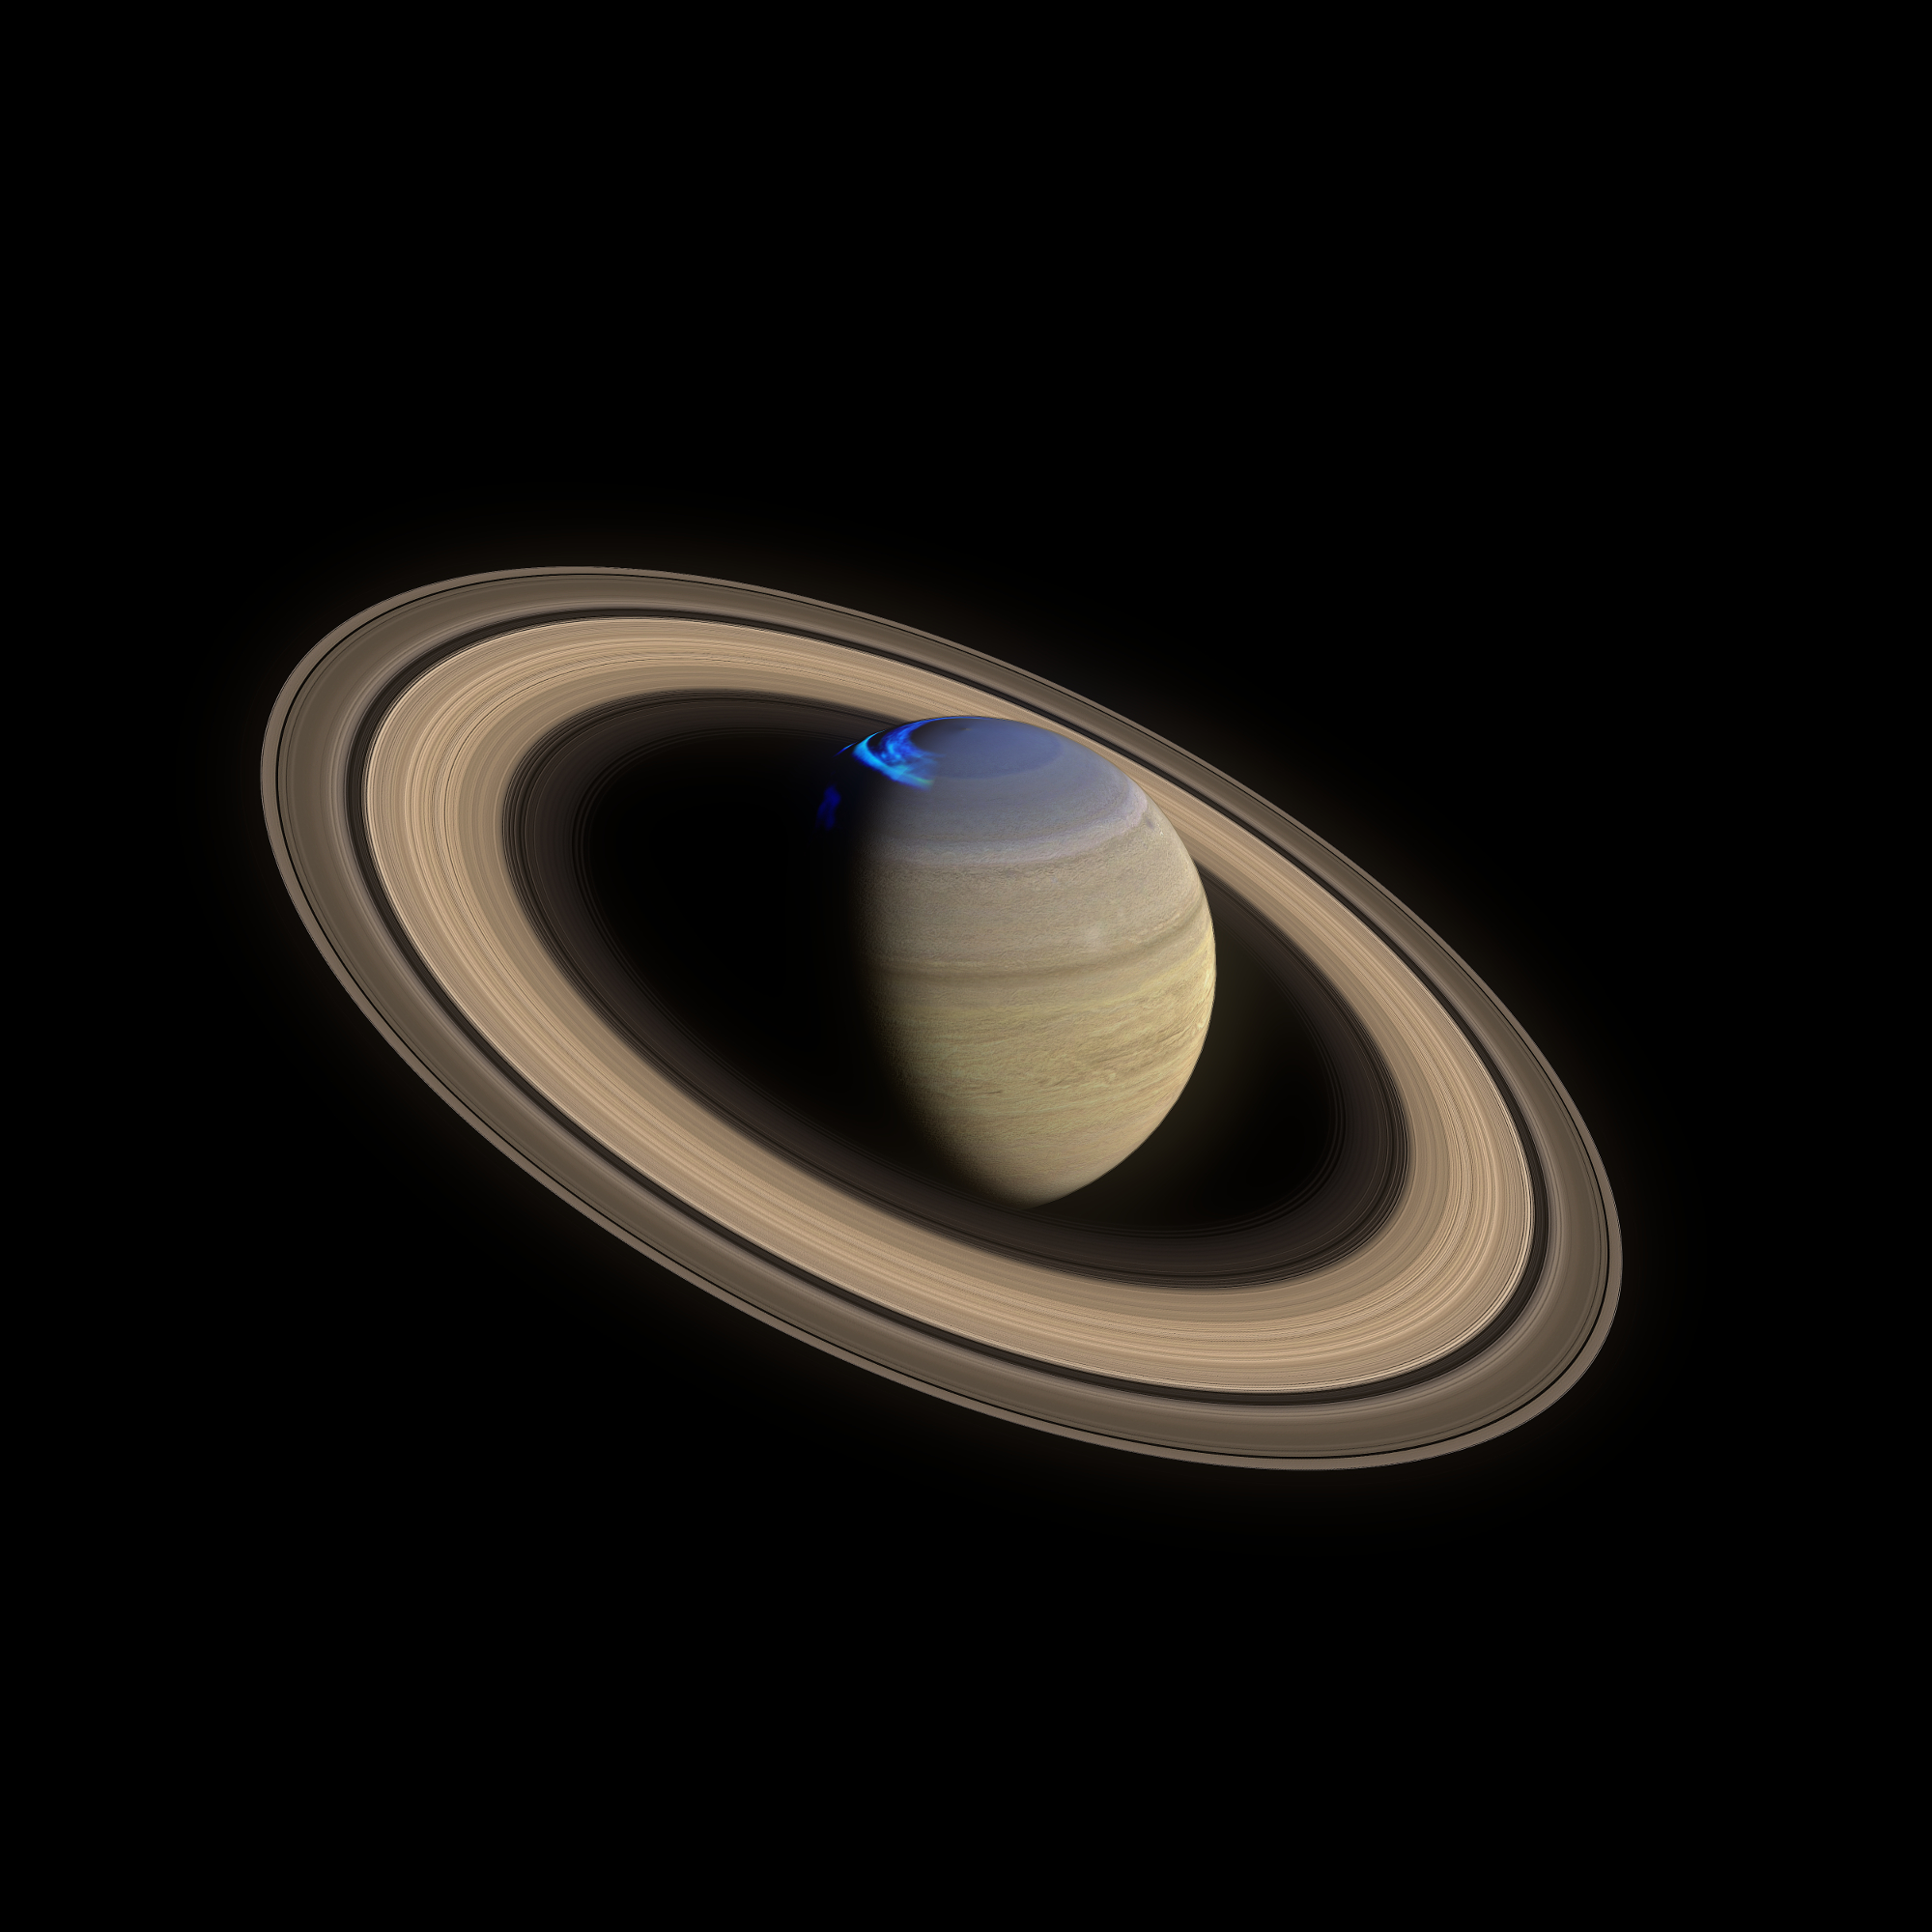 Saturn 4k 3d model obj fbx 3ds da 263338